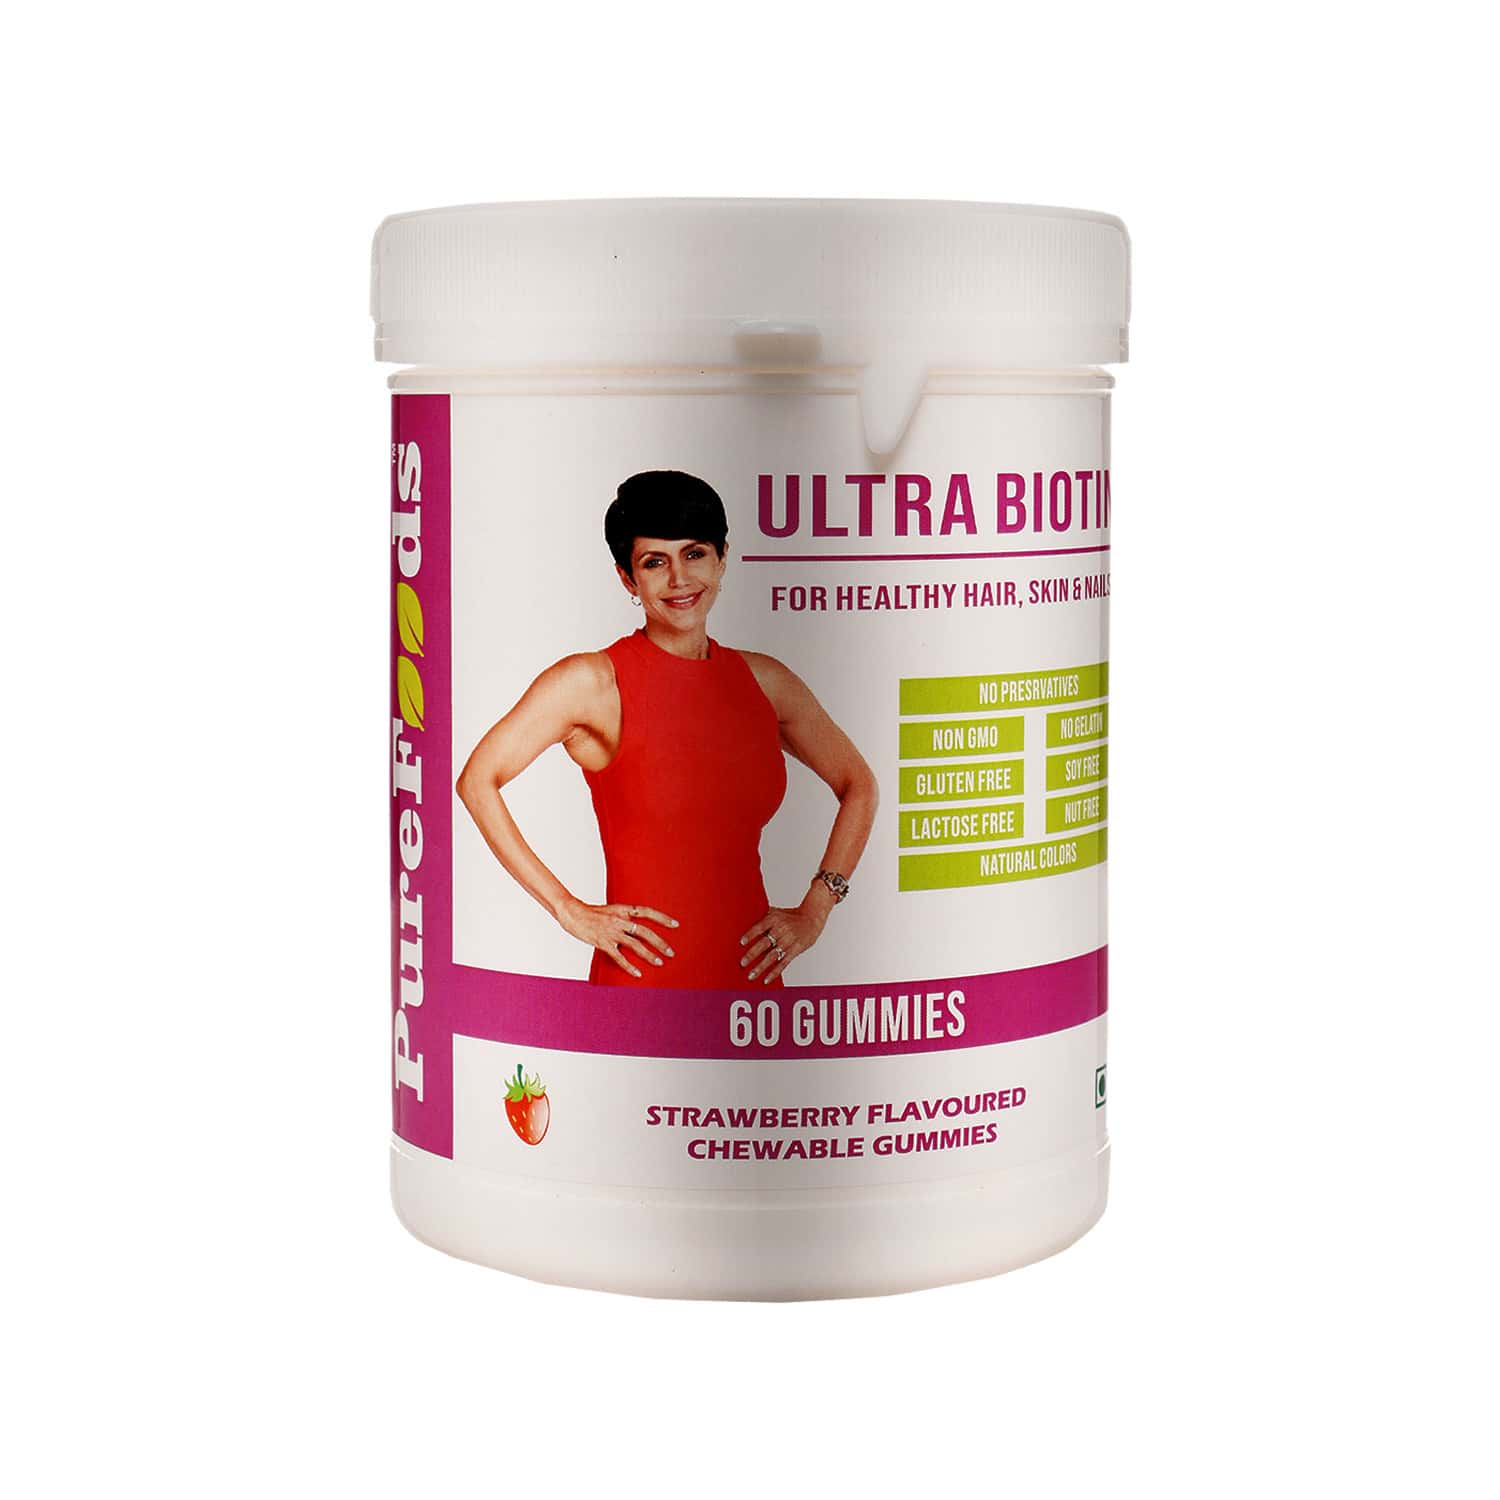 Purefoods Ultra Biotin Gummies For Healthy Hair, Skin And Nails - (60 Gummies Strawberry Flavoured)